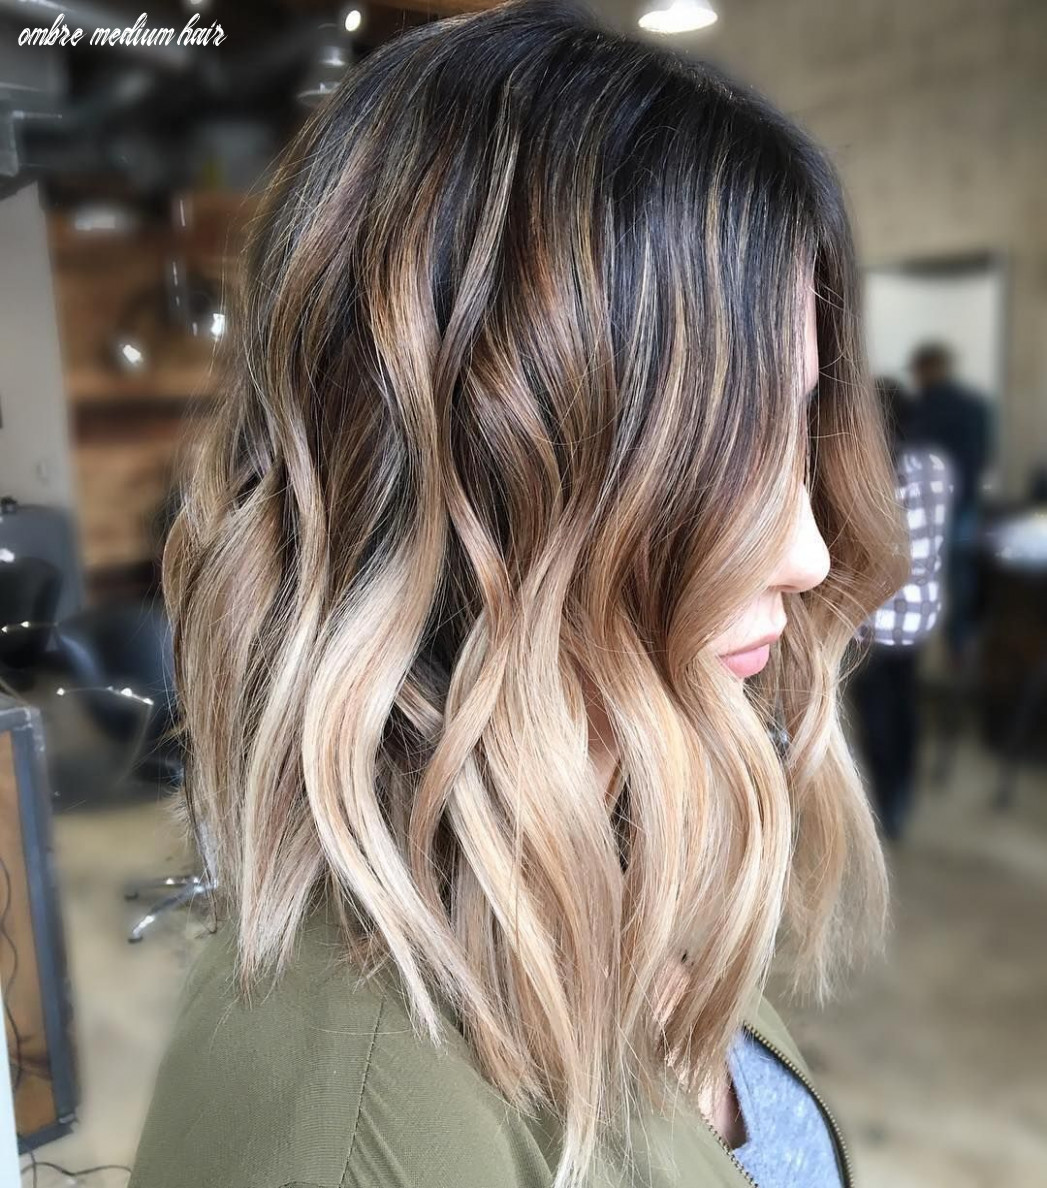 9 balayage ombre hair styles for shoulder length hair, women